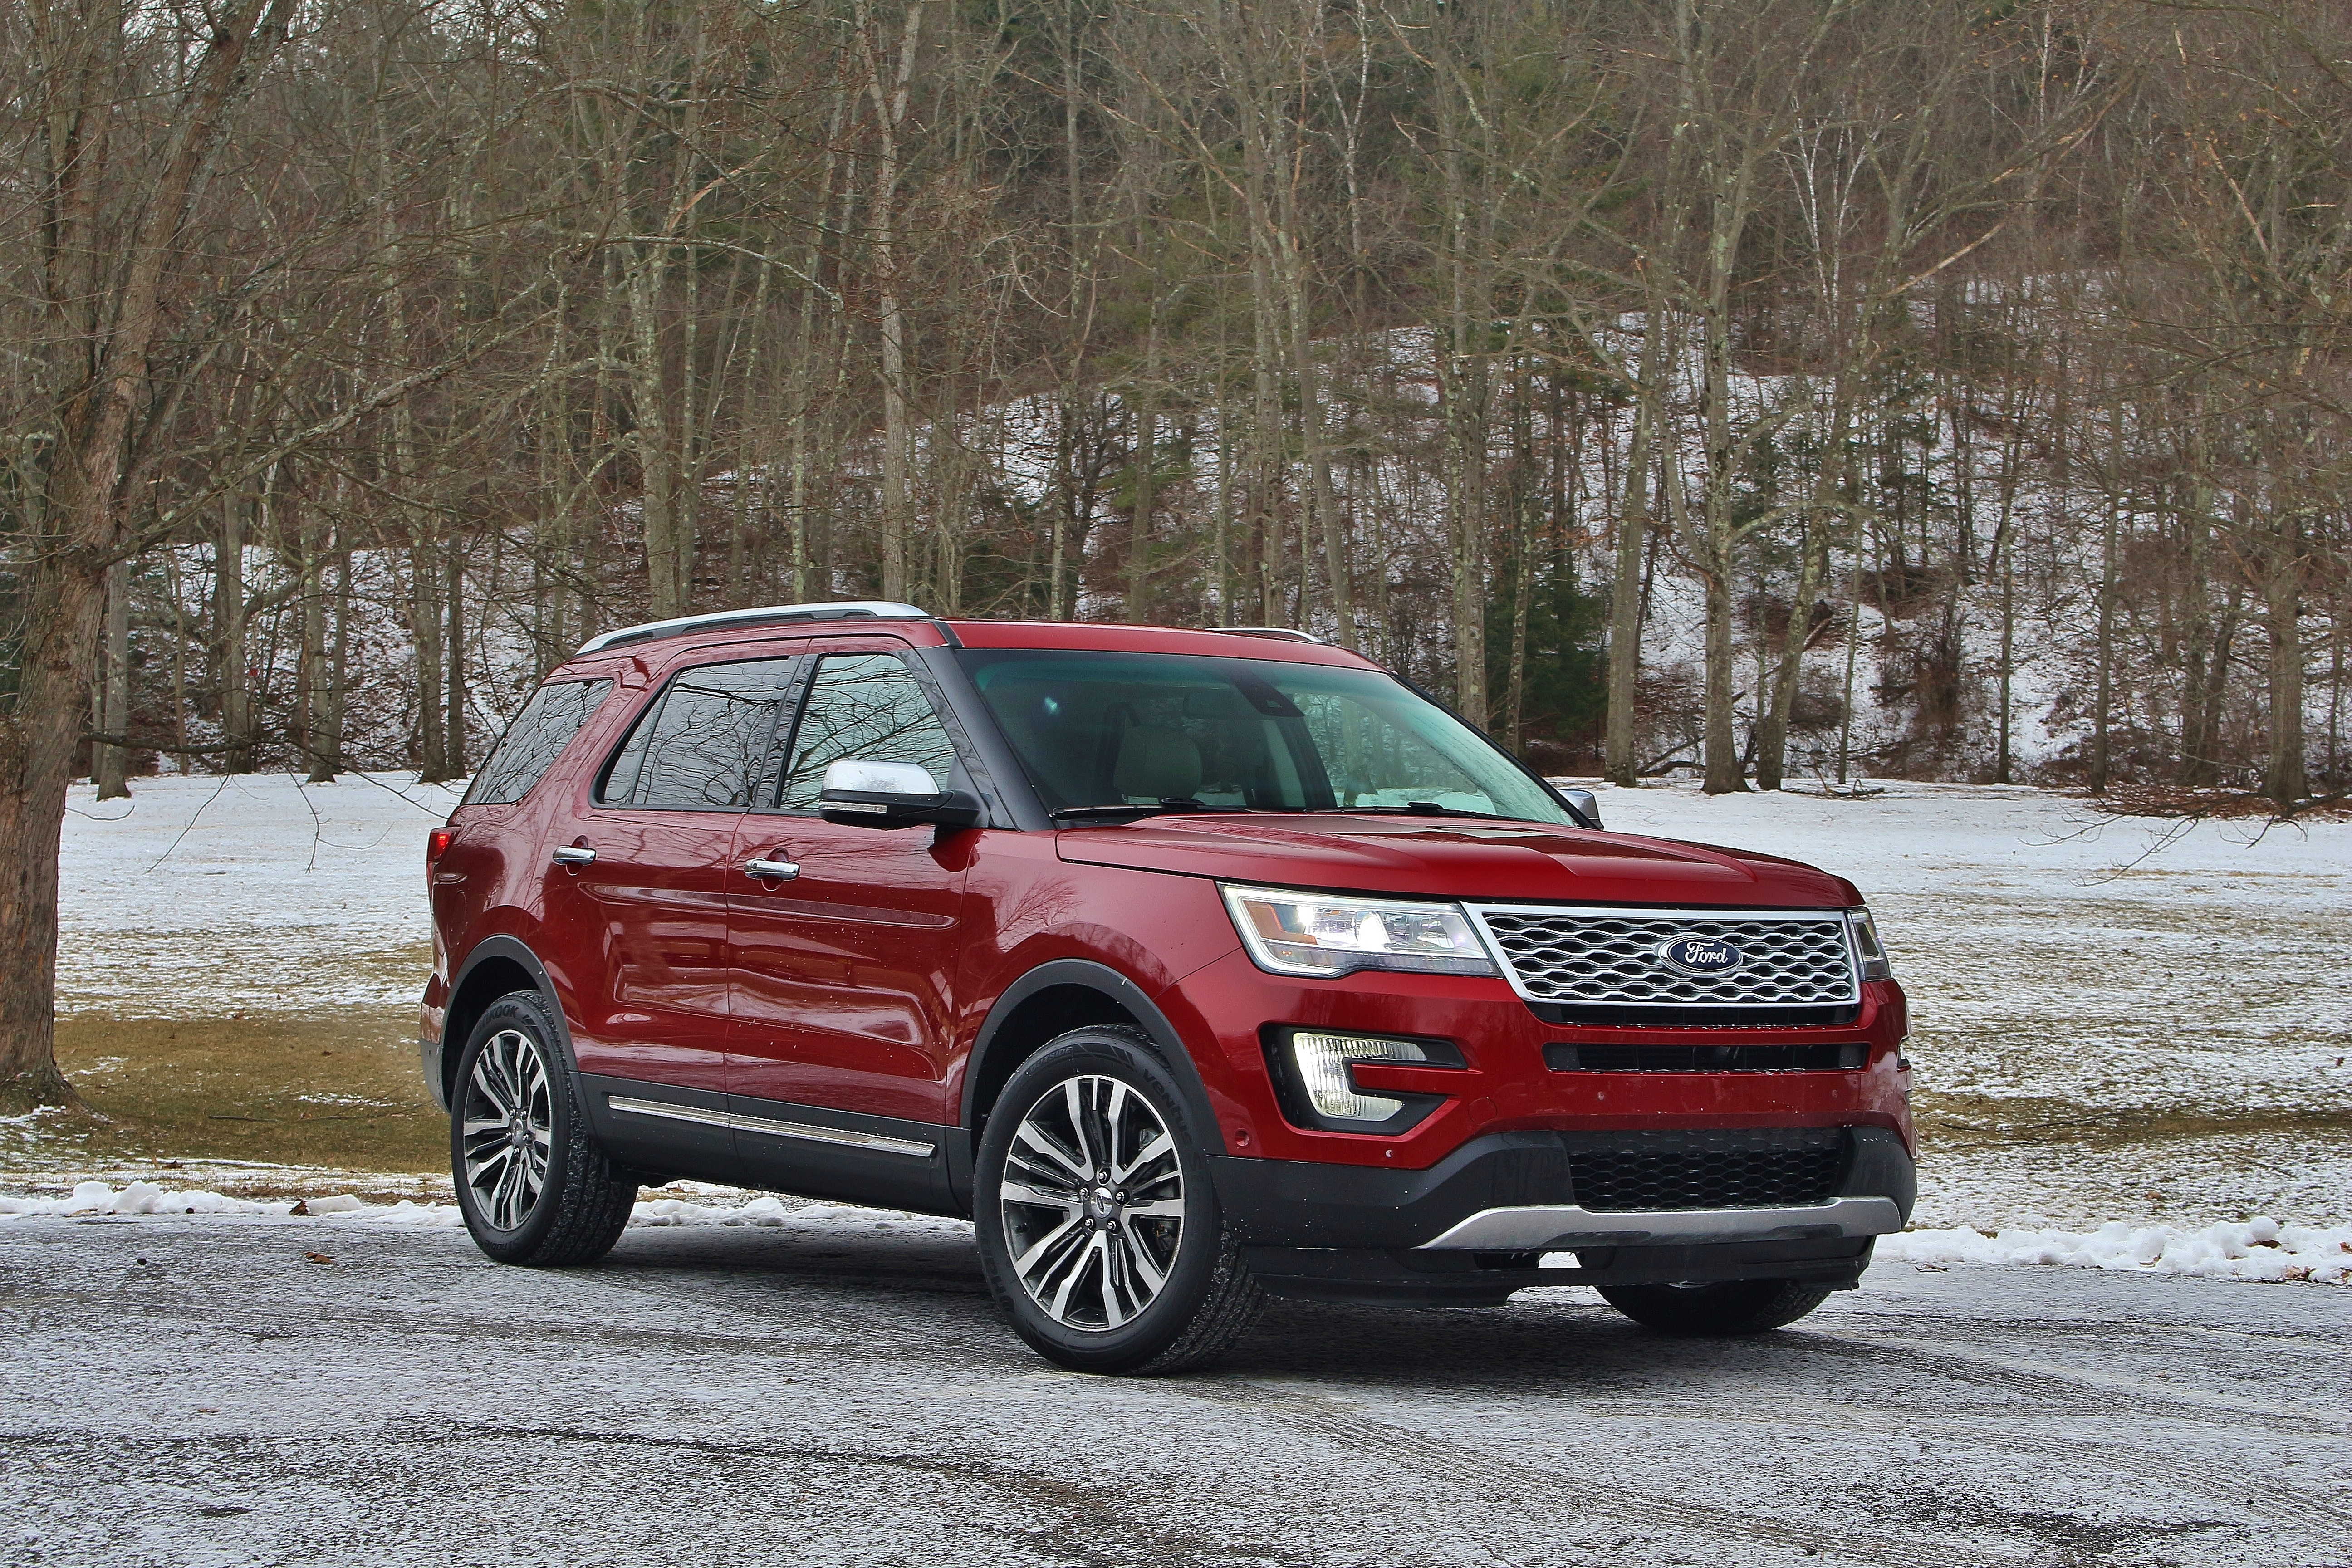 jcr content en all feu news leading rightrailpar space and new edge class apr ford offers viewmore fordmedia image relatedphoto driving suv relatedmedia dyn